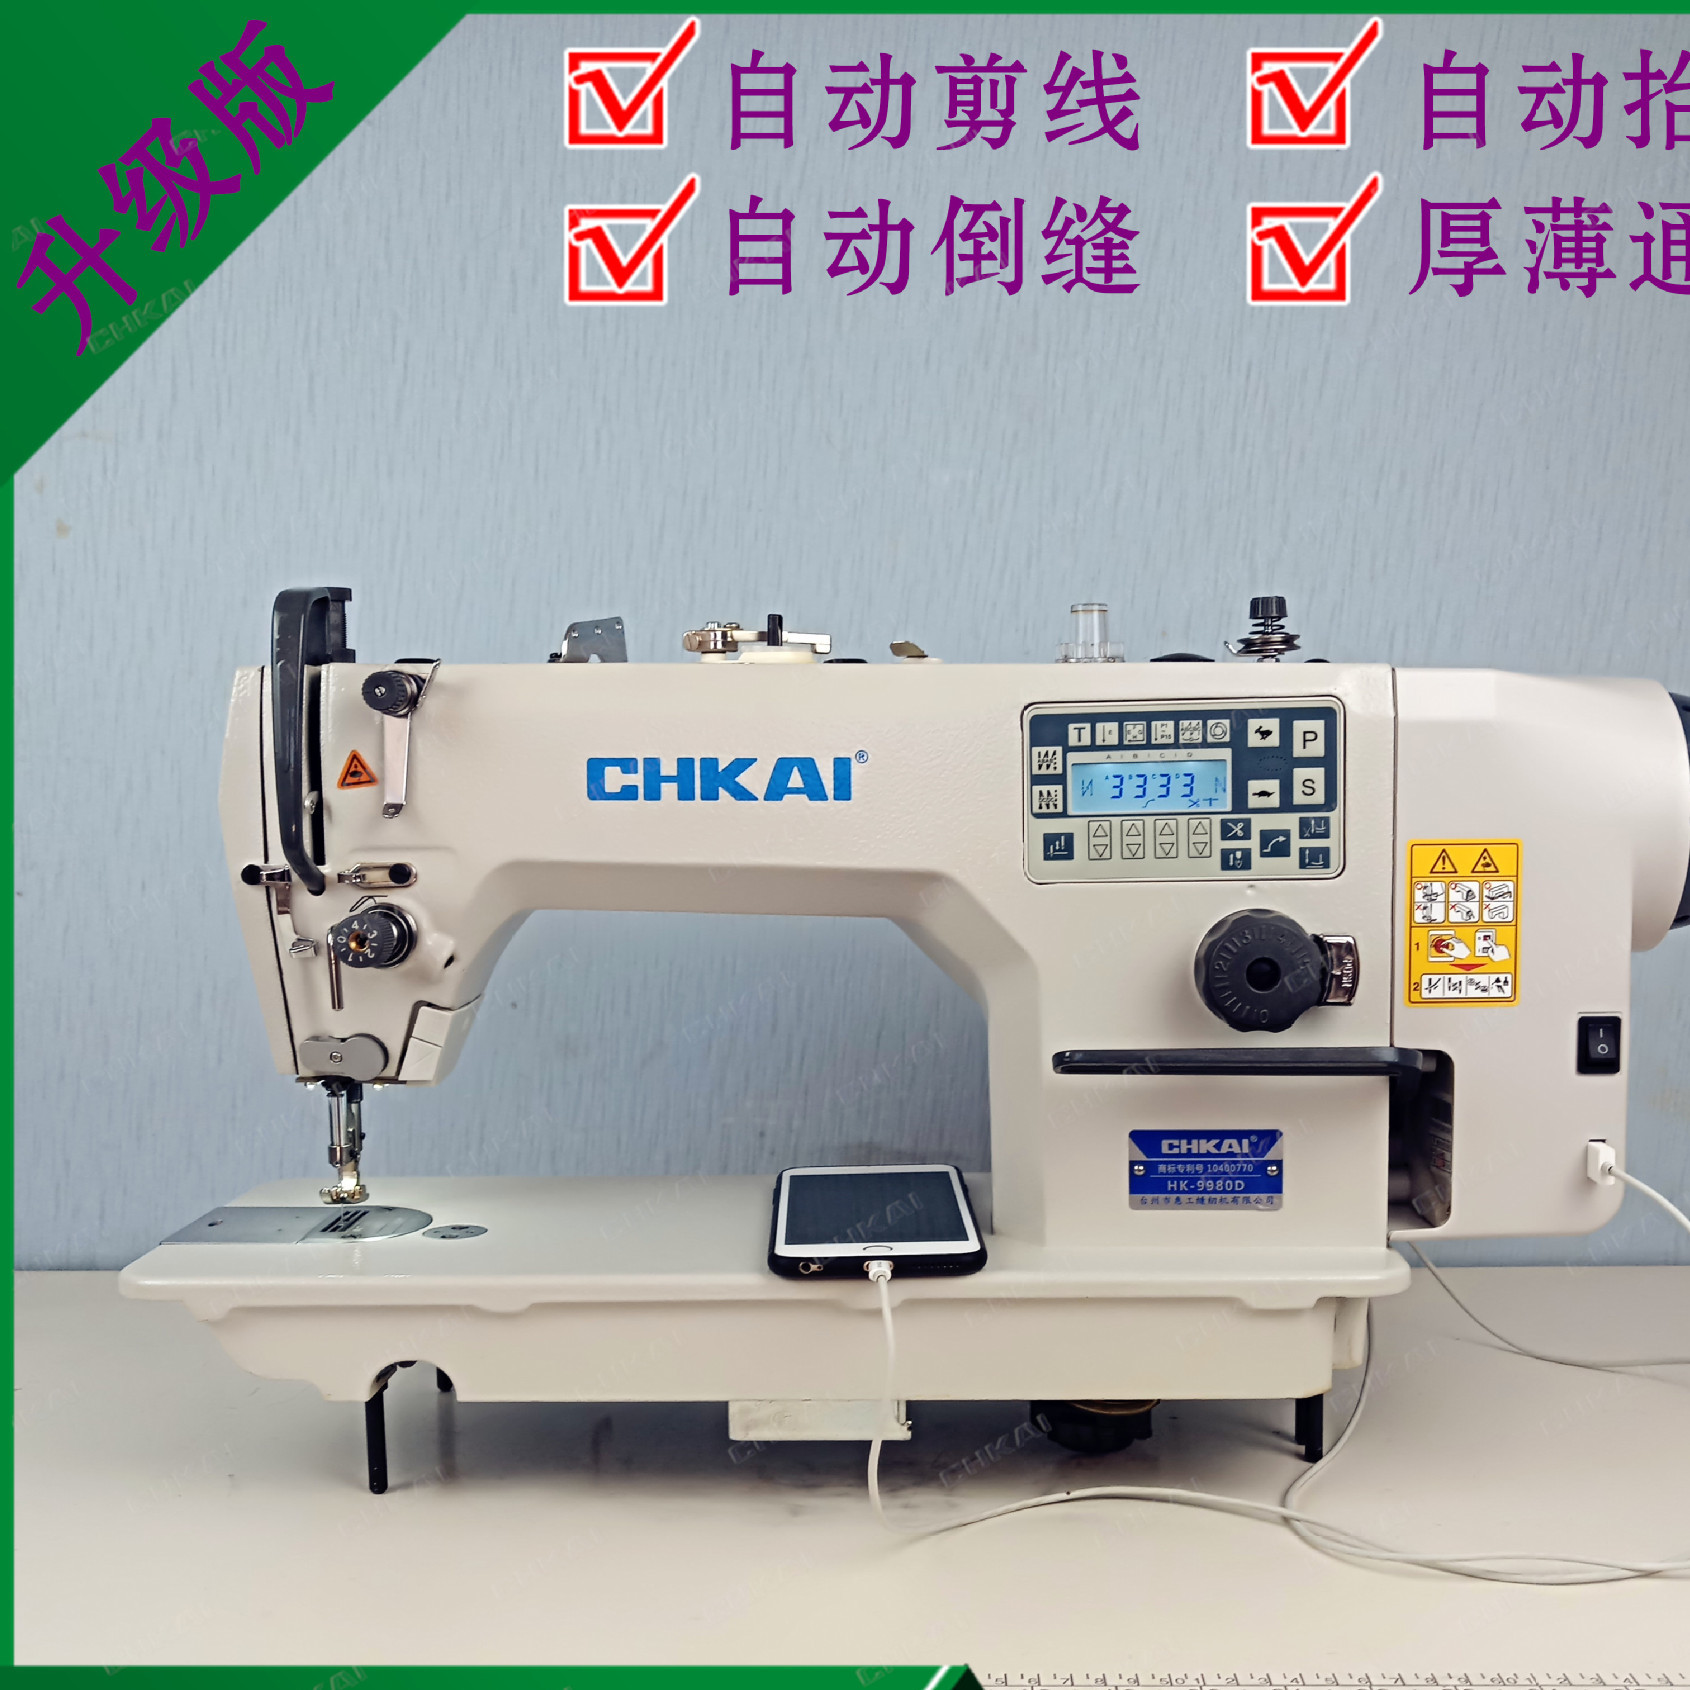 Computer flat sewing machine industrial sewing machine electric sewing machine automatic family car sales